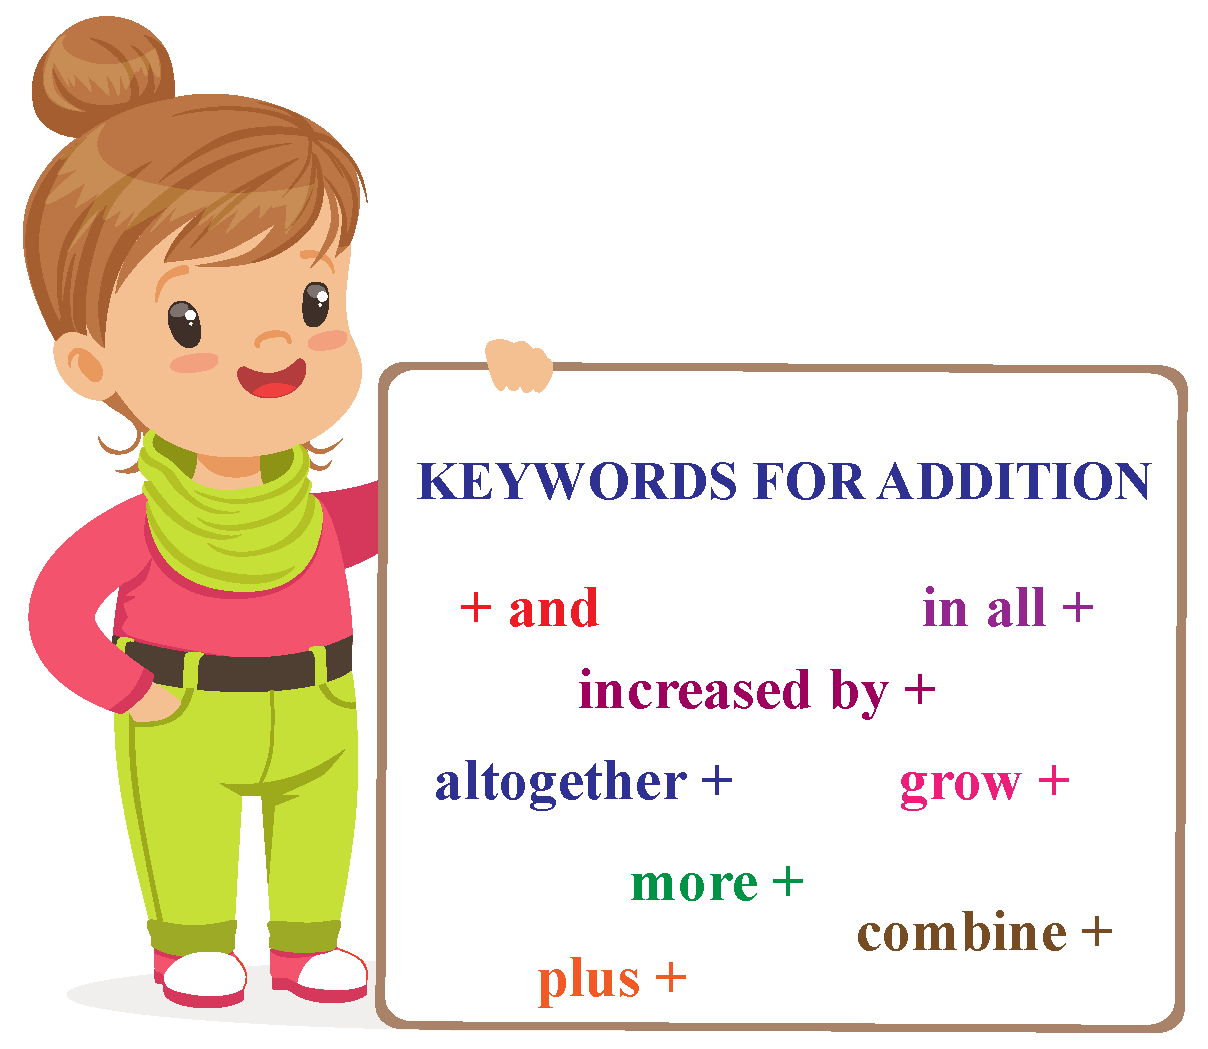 Different phrases which indirectly mean addition